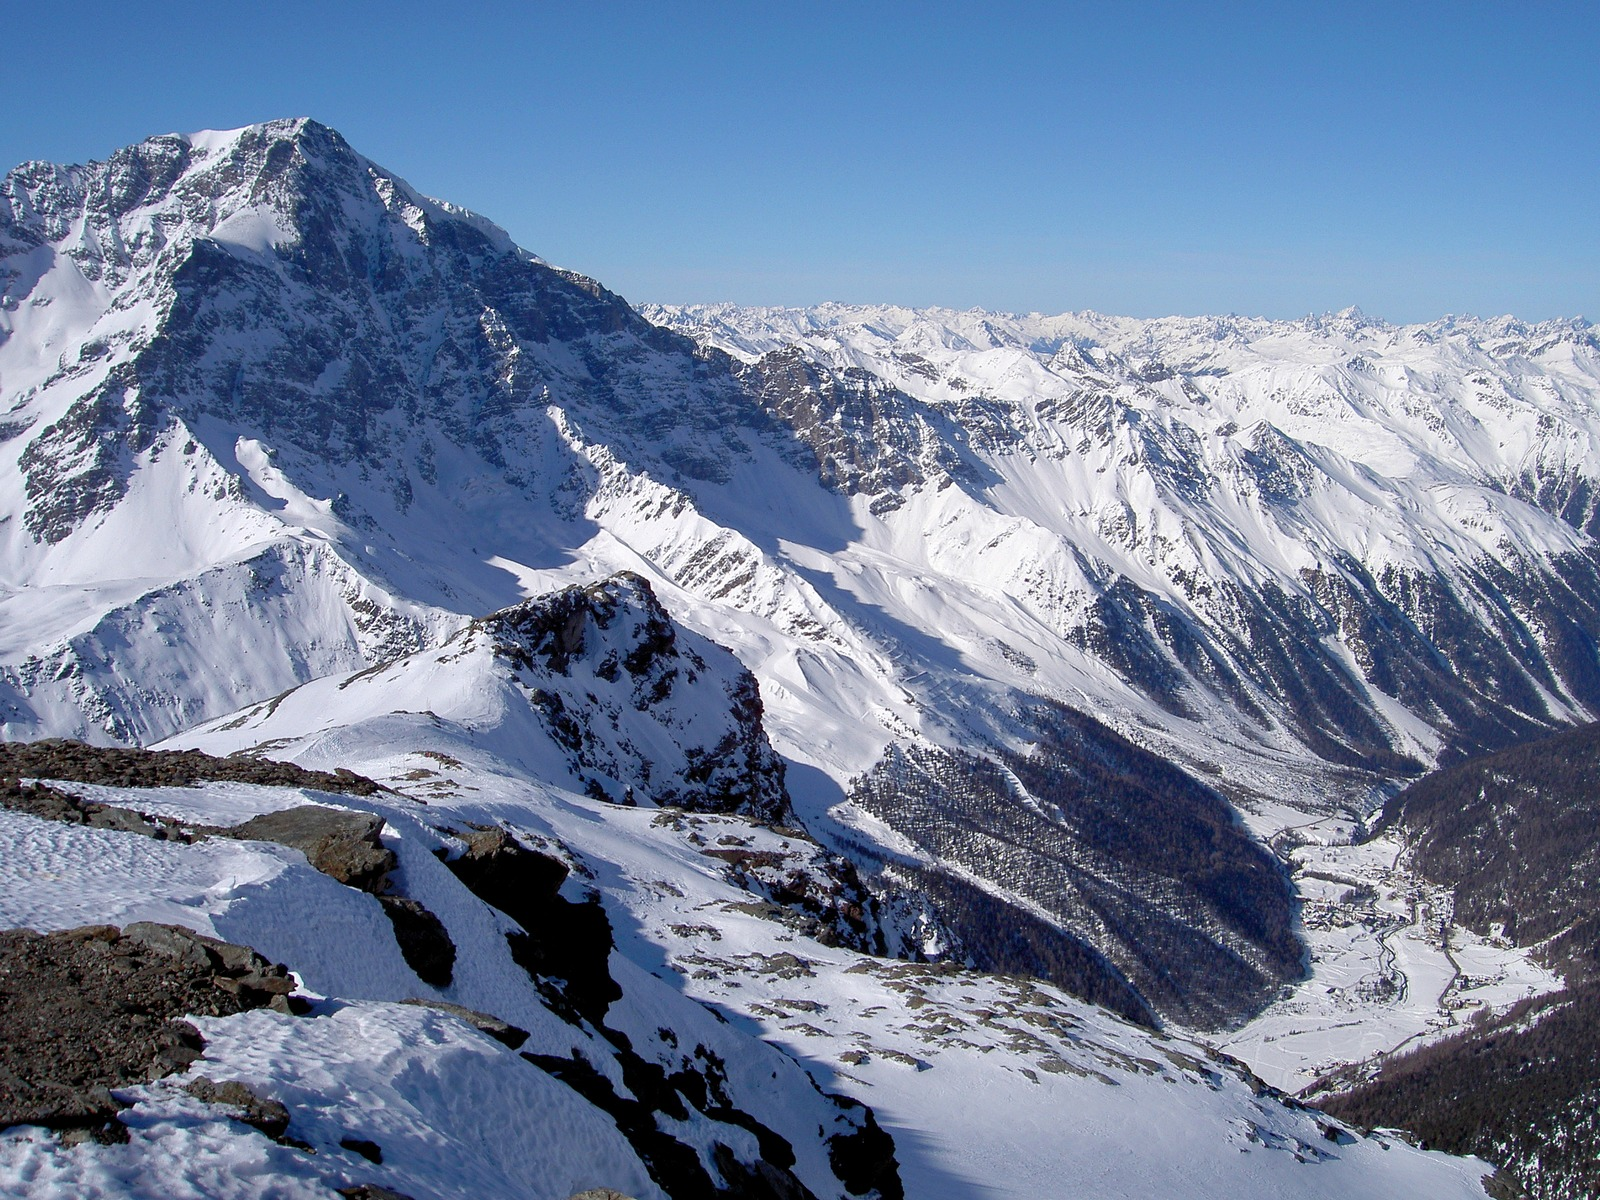 Ortler and Sulden valley, view from Schontaufspitze 3320m